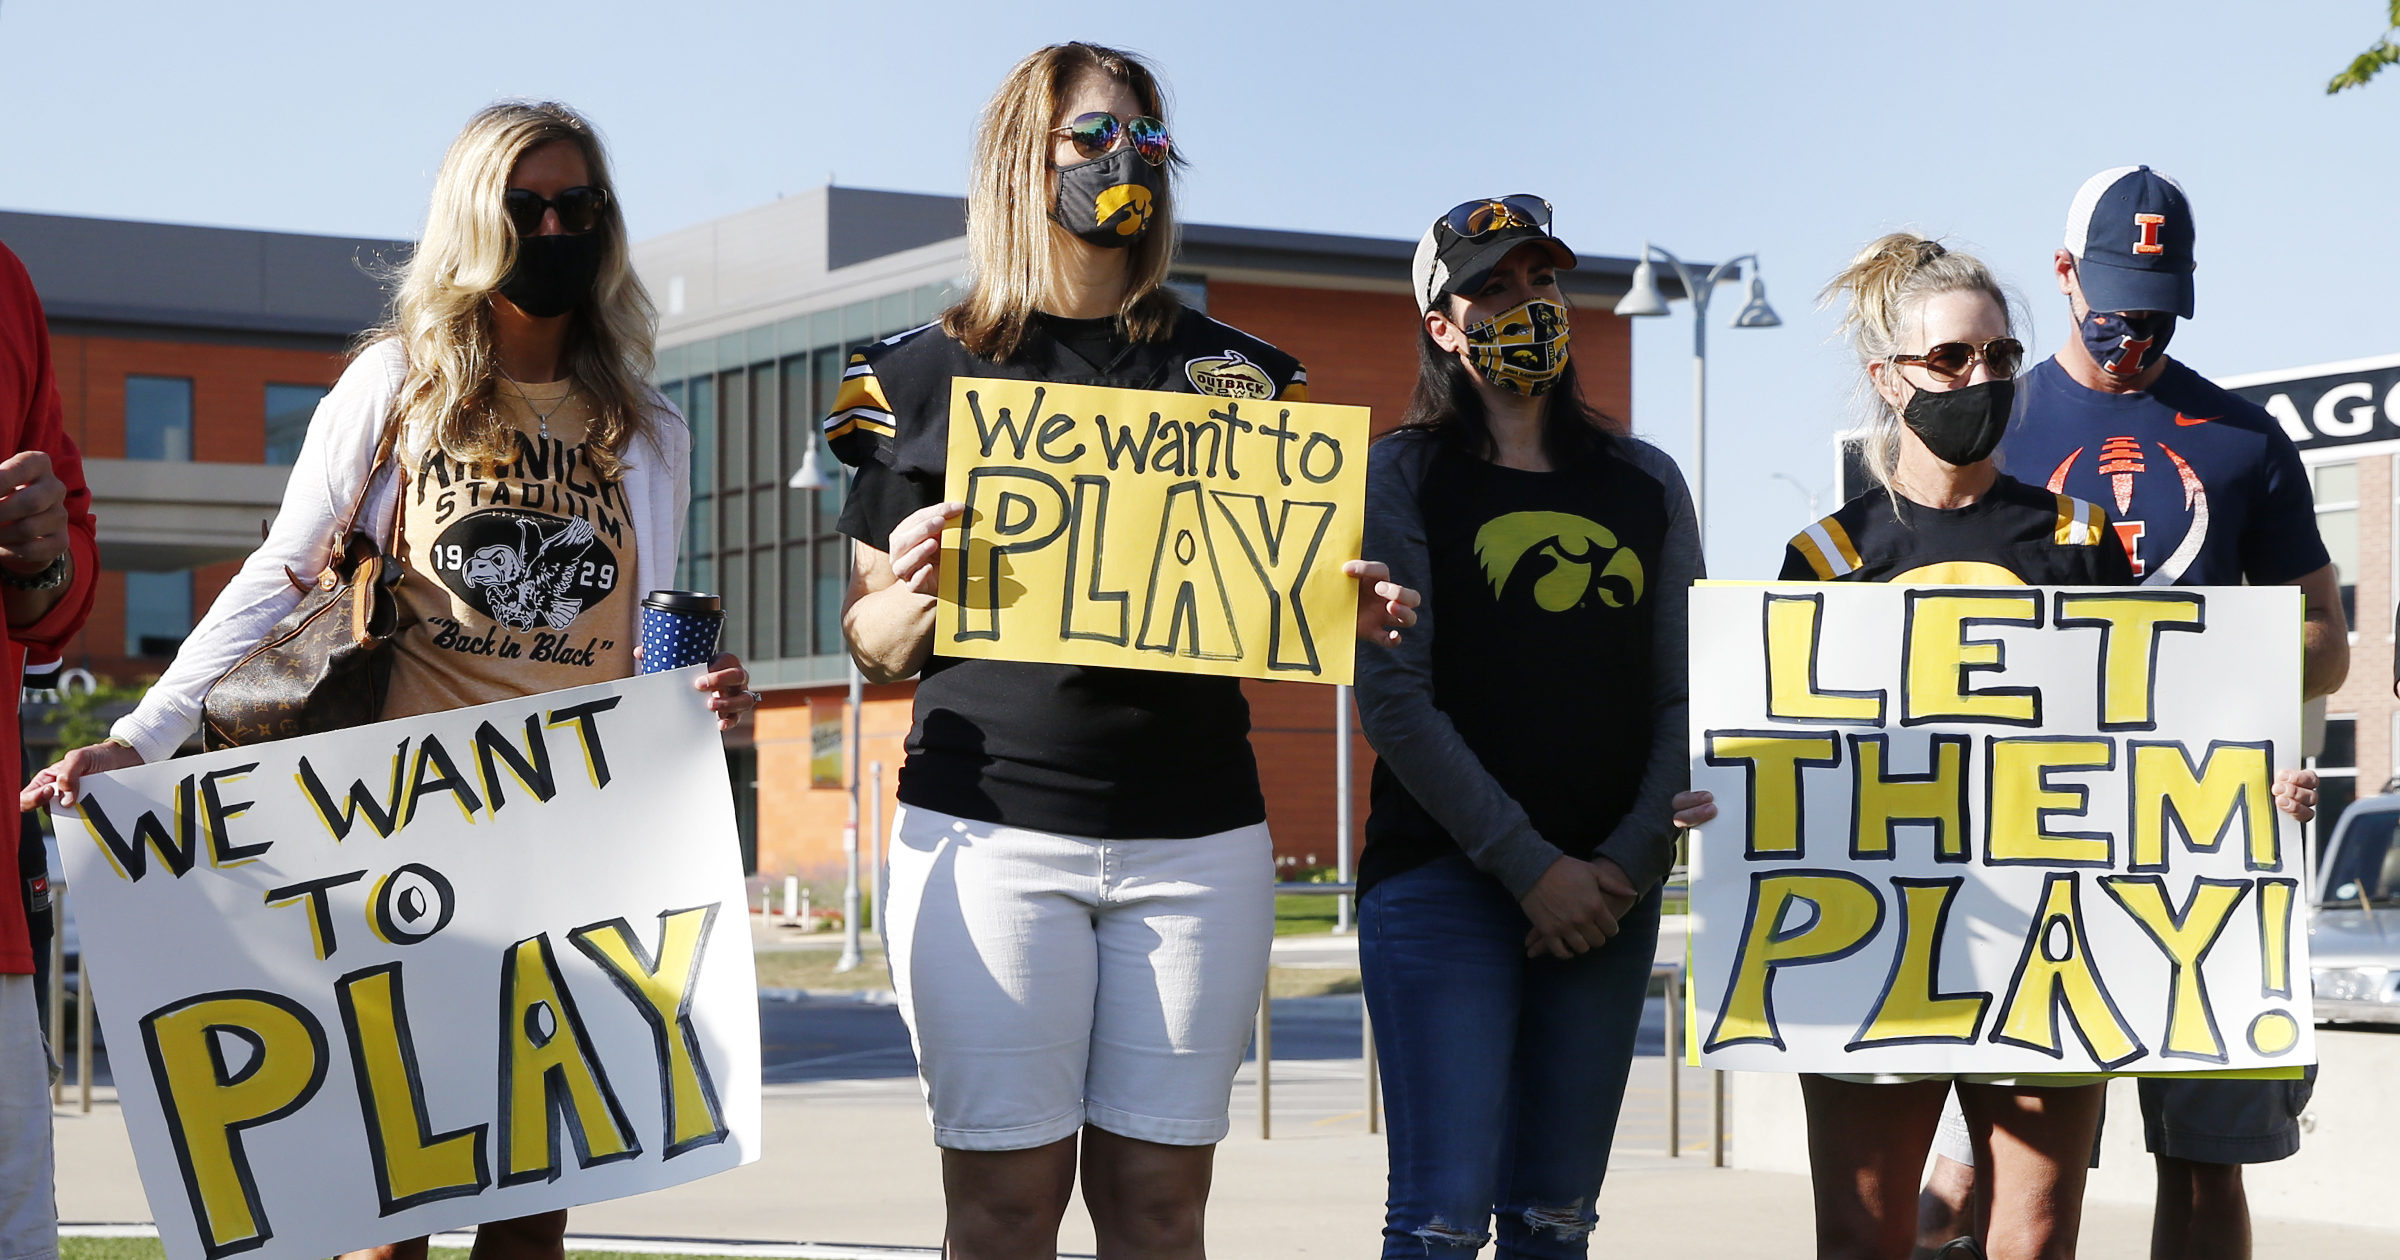 University of Iowa football players' parents protest outside Big Ten headquarters in Rosemont, Illinois, on Aug. 21, 2020.